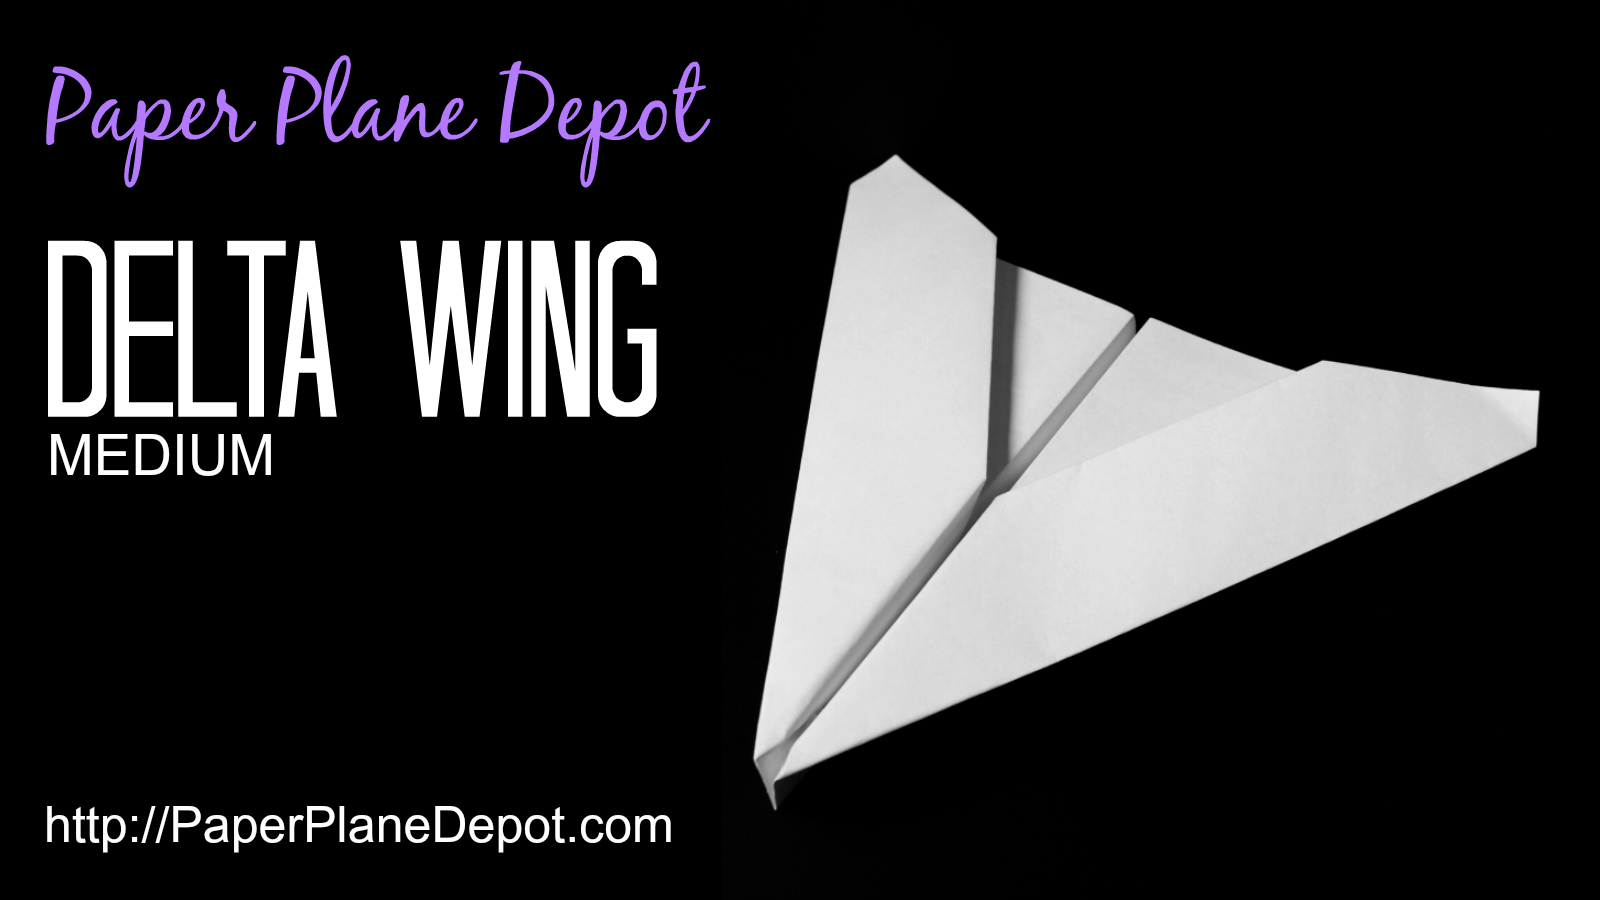 How To Make Cool Paper Airplane Designs DELTA WING - PAPER PLA...